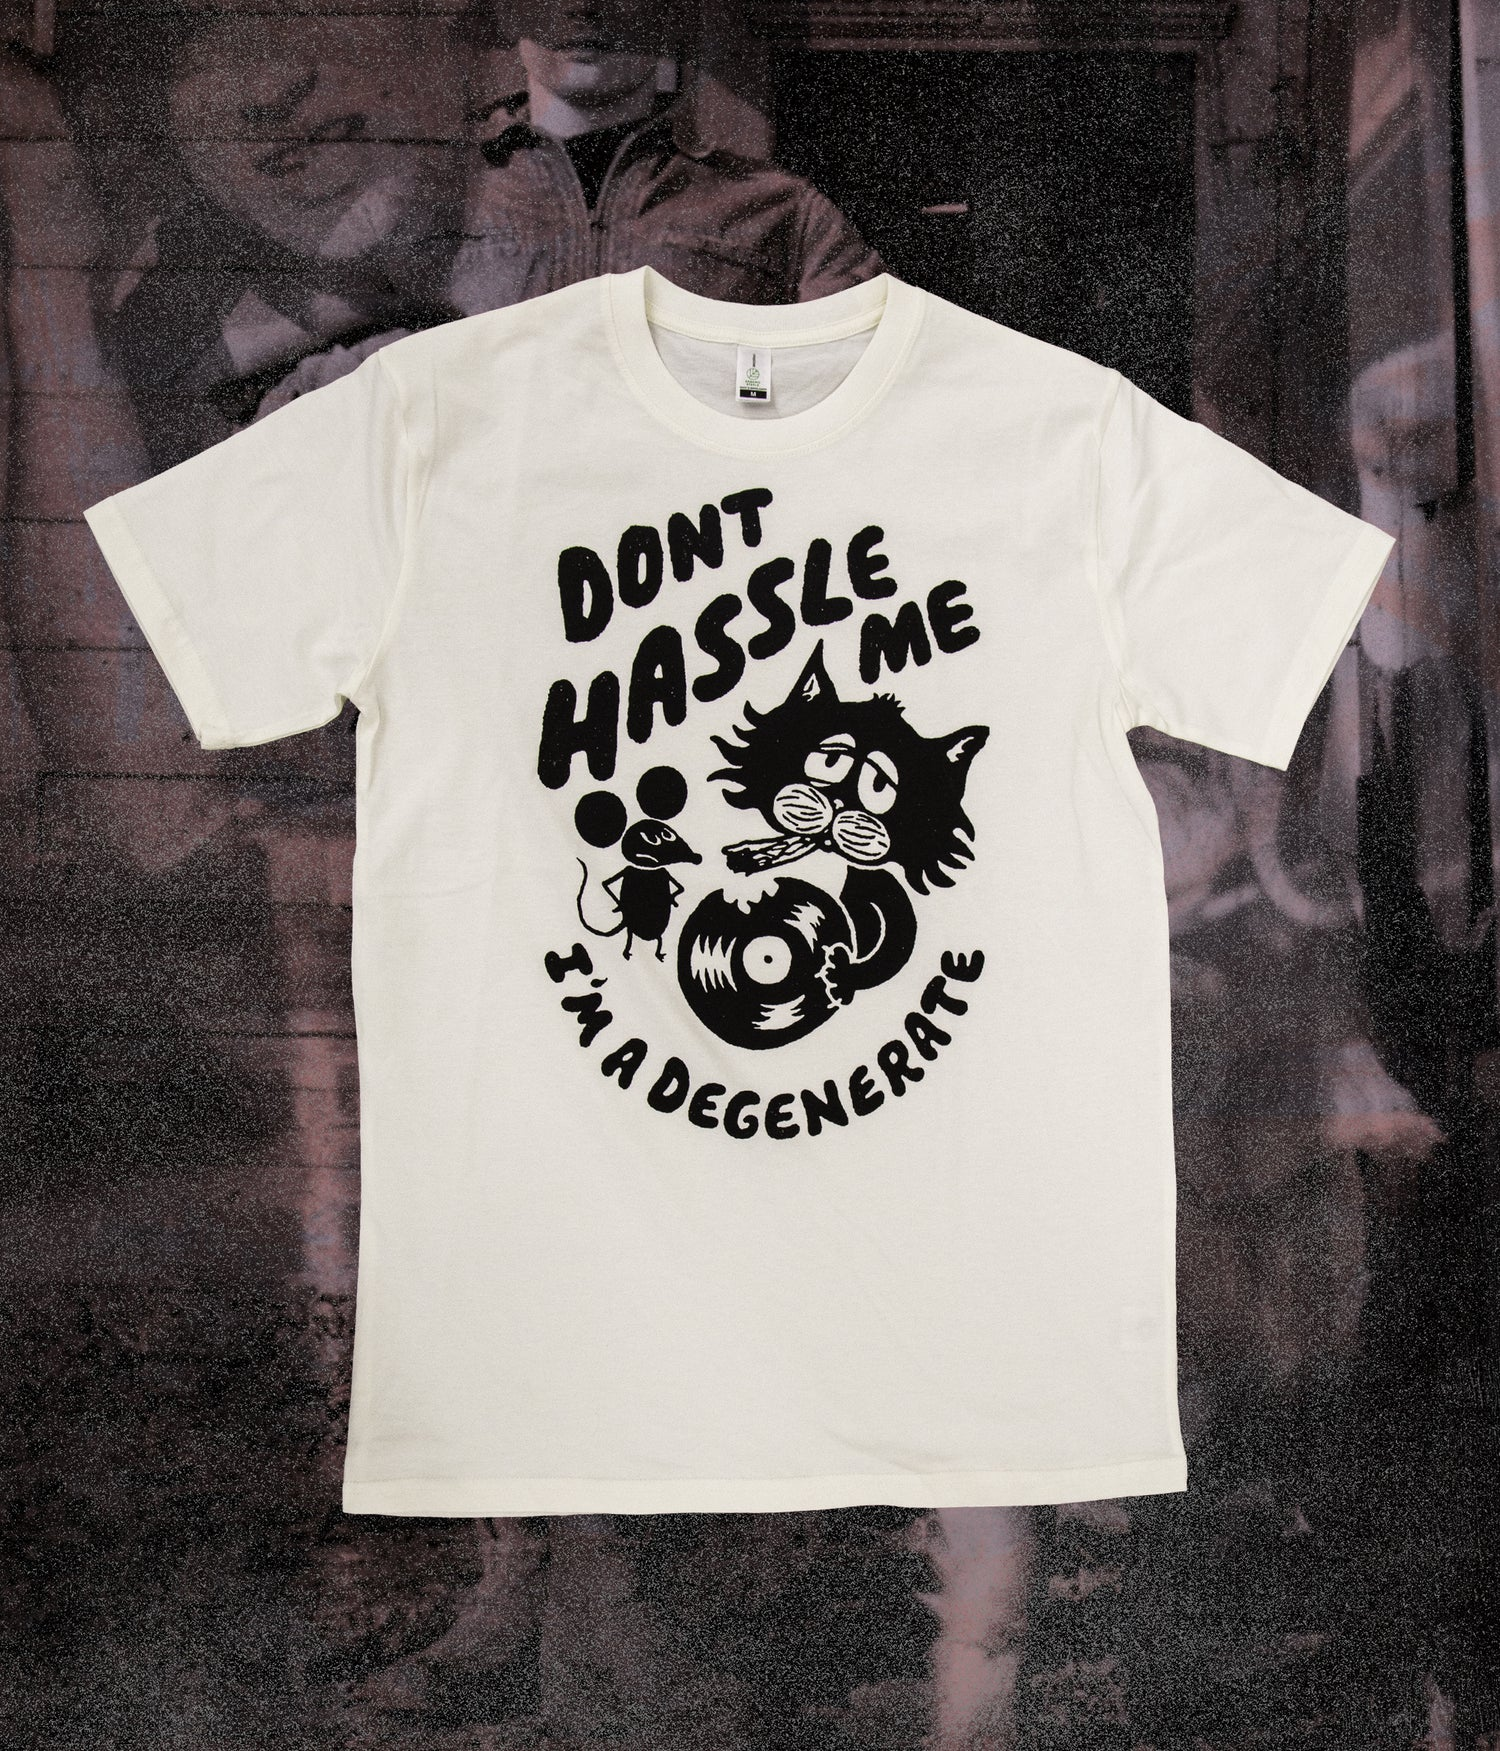 Don't Hassle Me tee